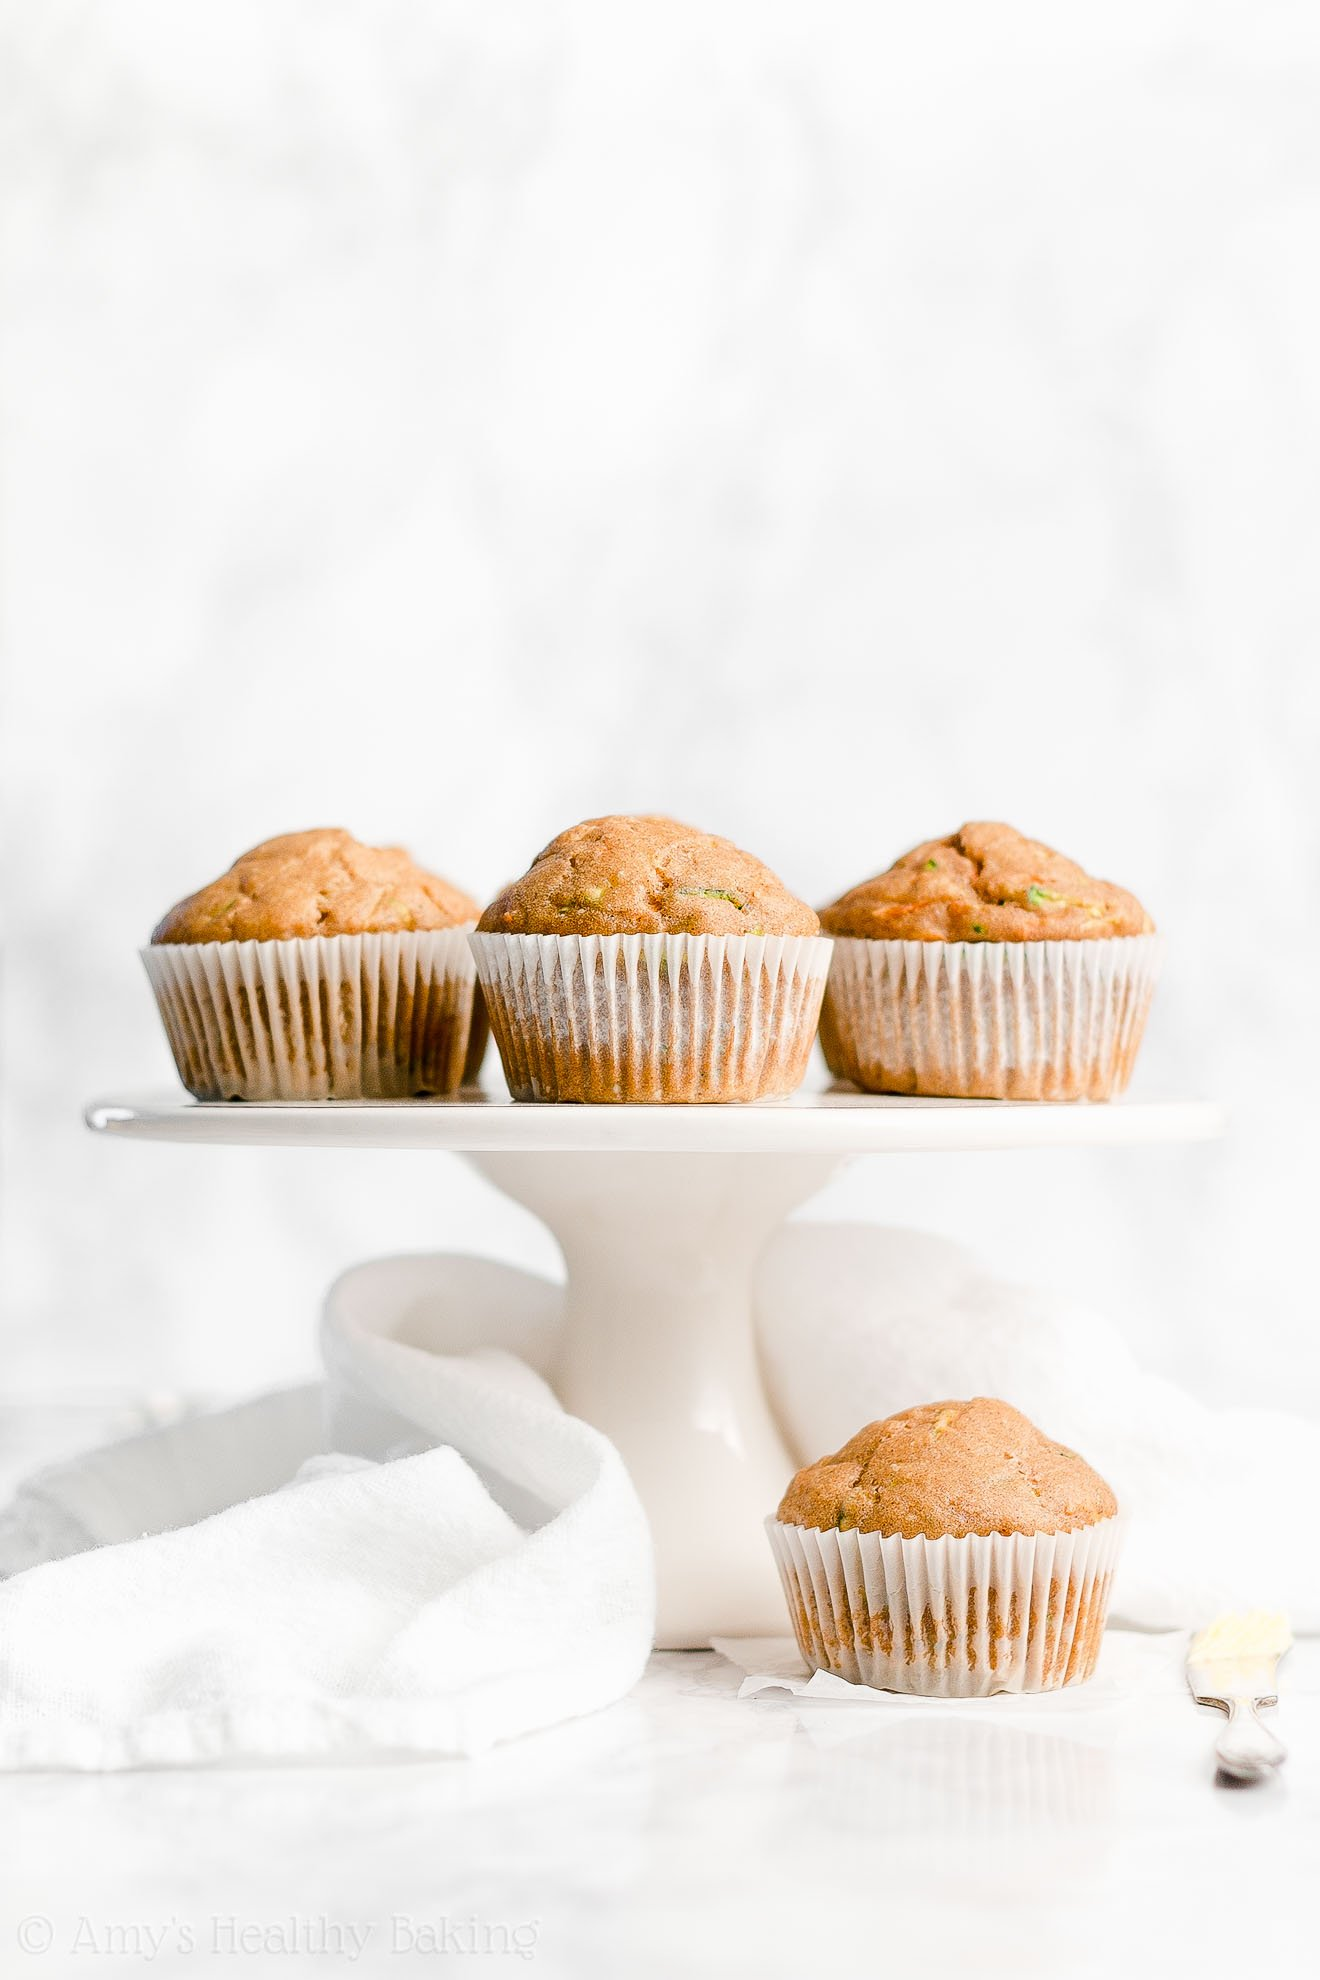 Easy Healthy Low Calorie Whole Wheat Spiced Carrot Zucchini Muffins